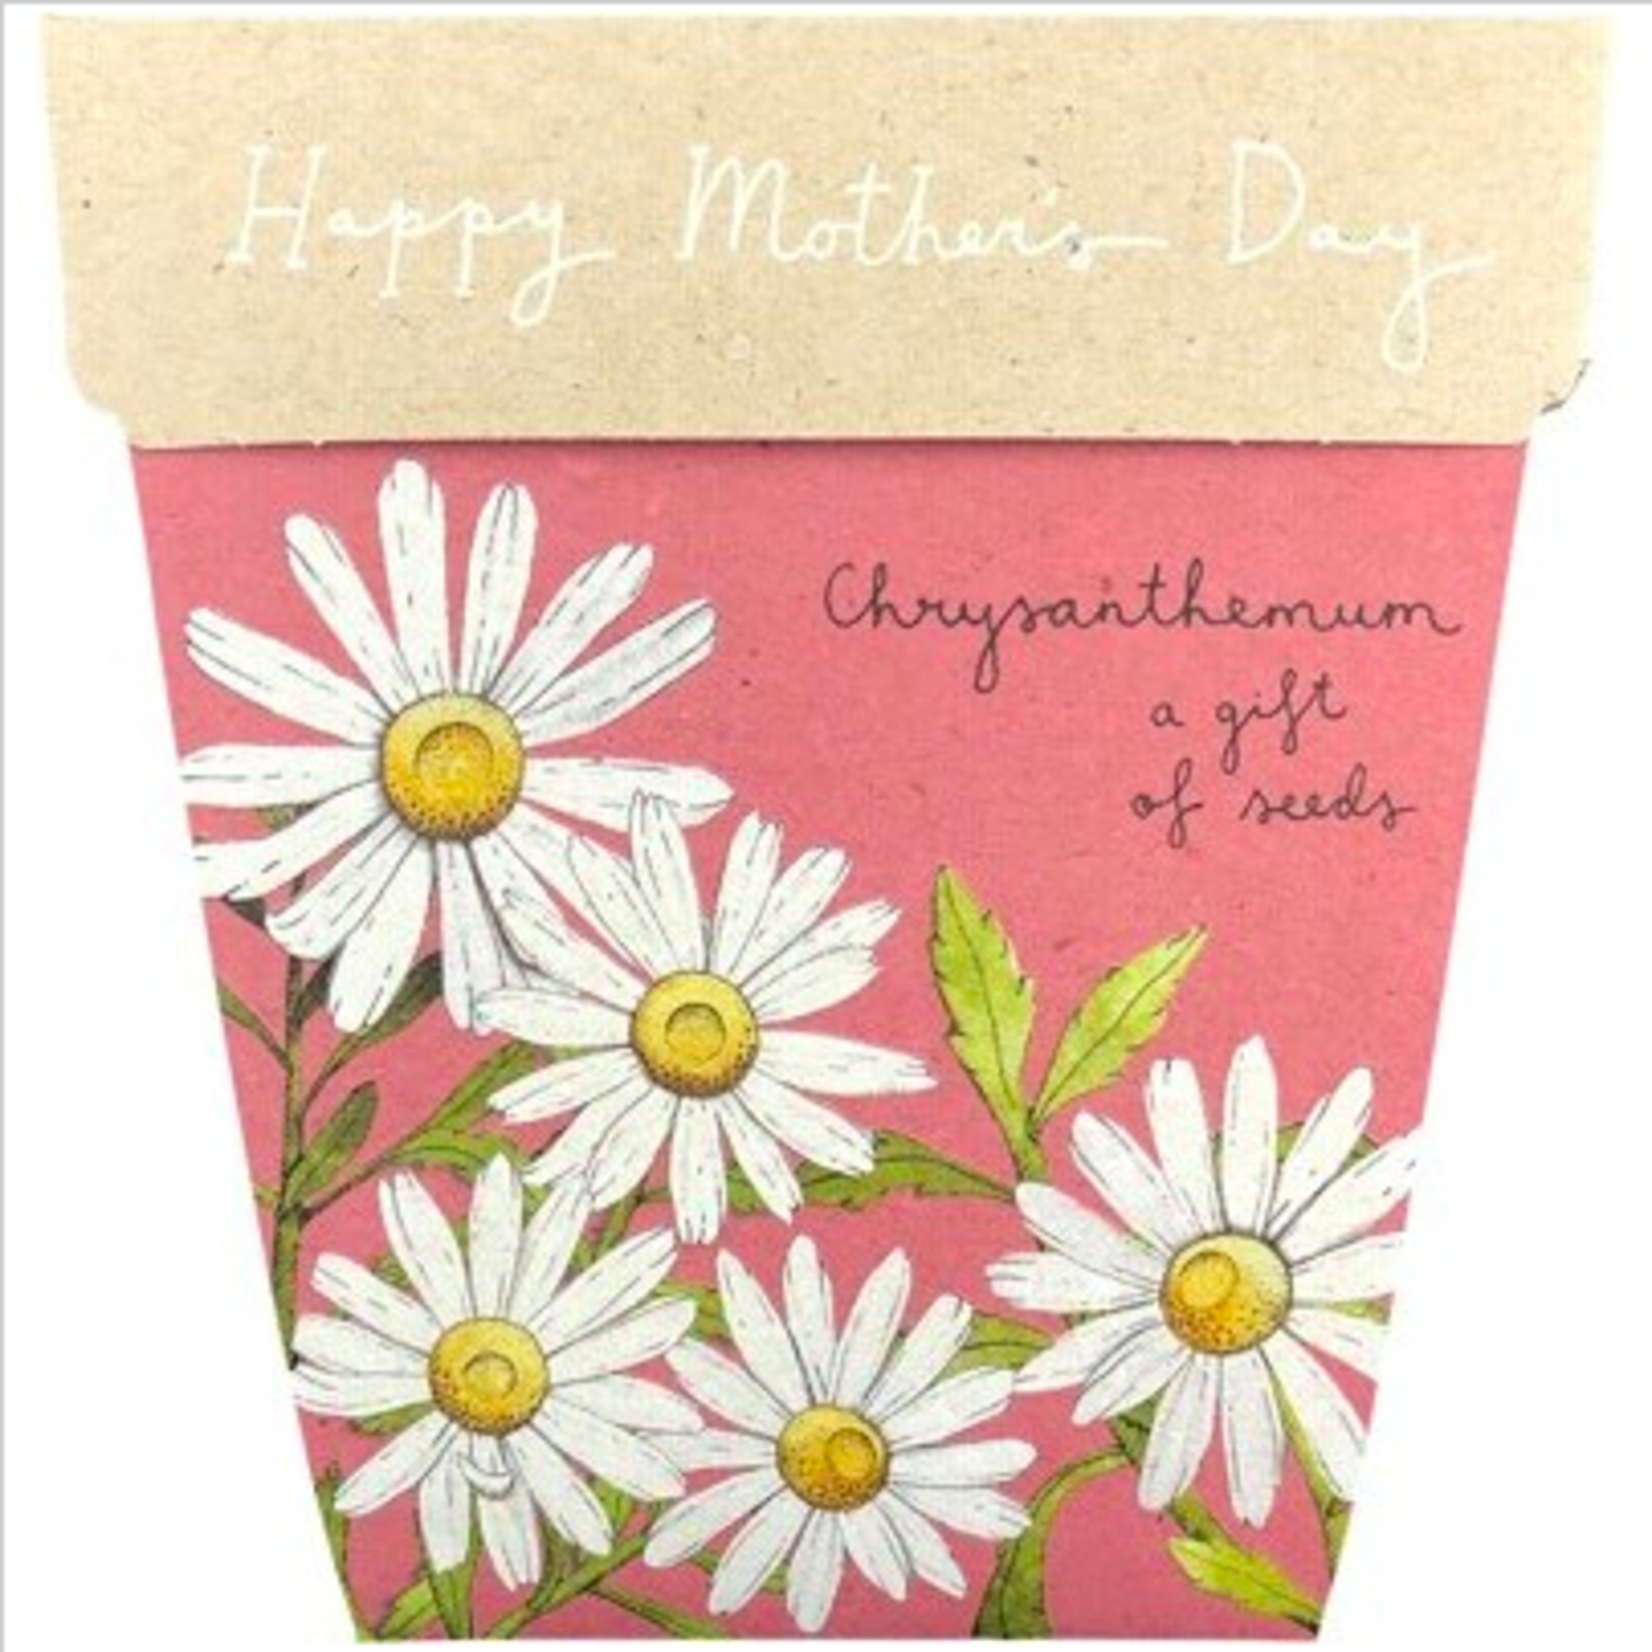 Sow 'n Sow Sow 'N Sow Gift of Seeds Mother's Day Chrysanthemum